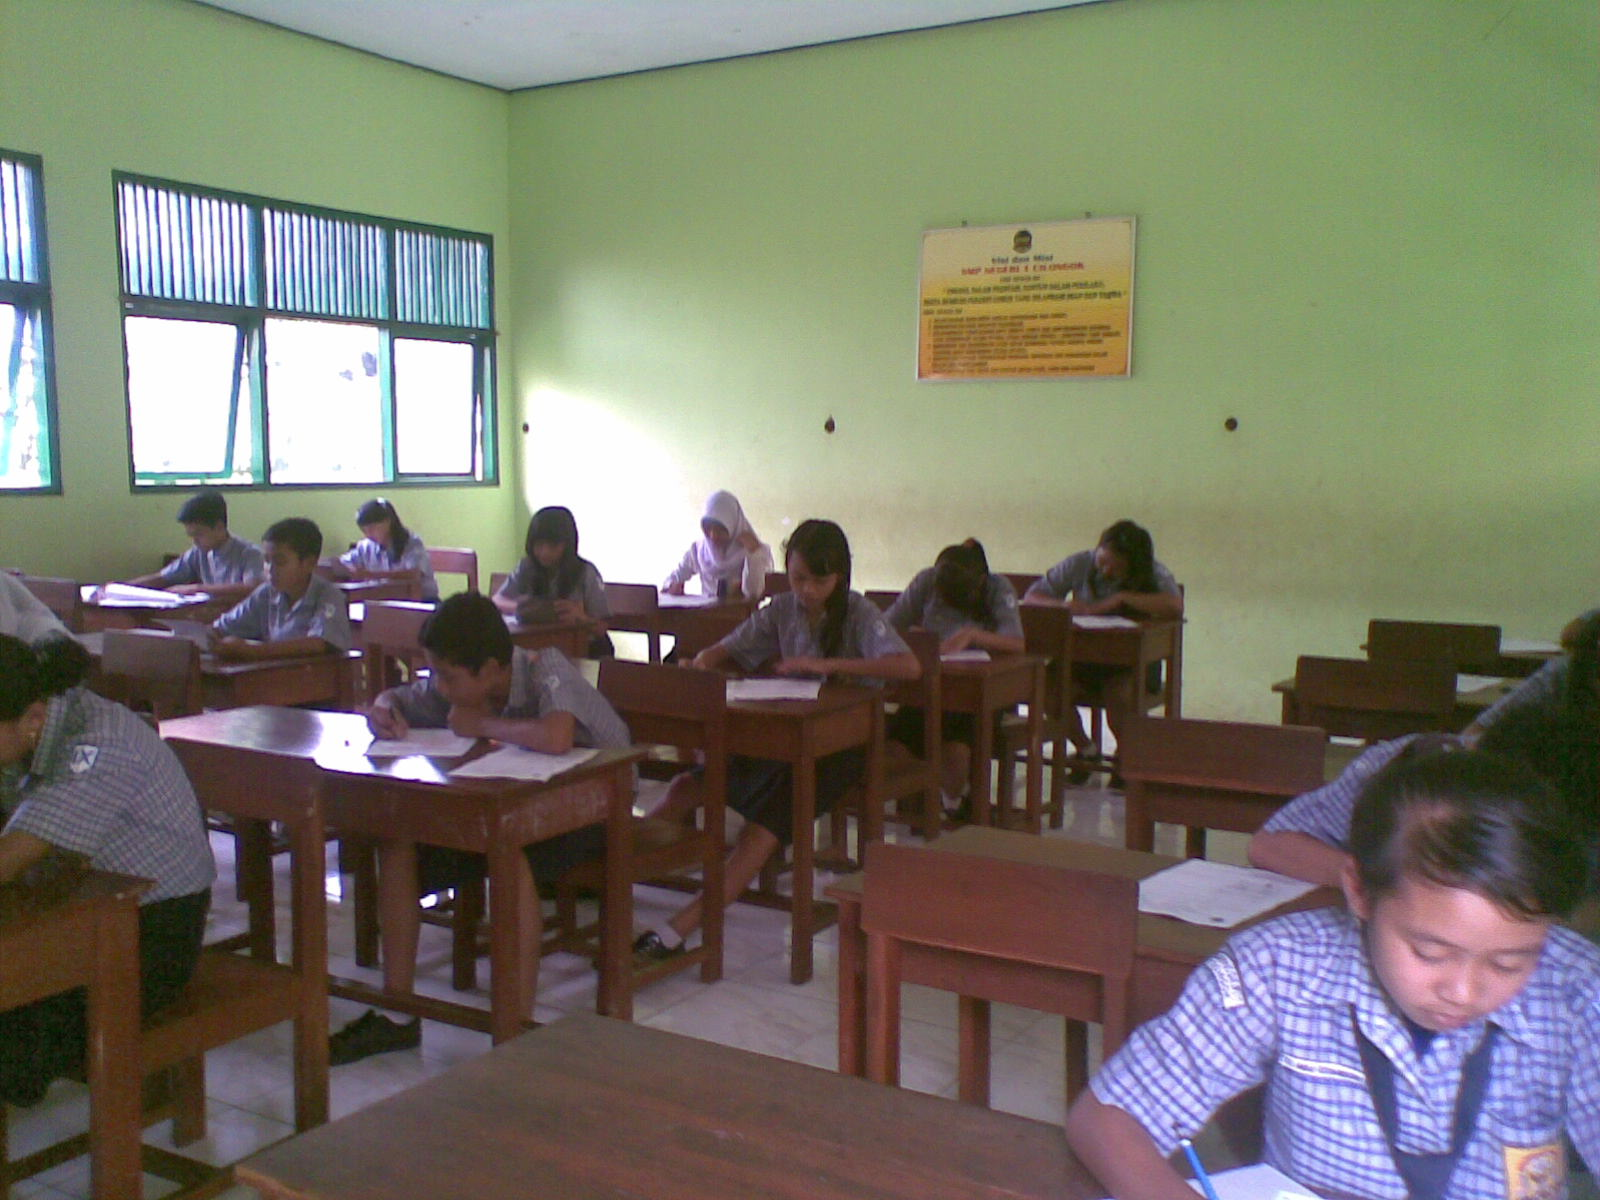 Soal Try Out Matematika 2012 2013 Educational Learning